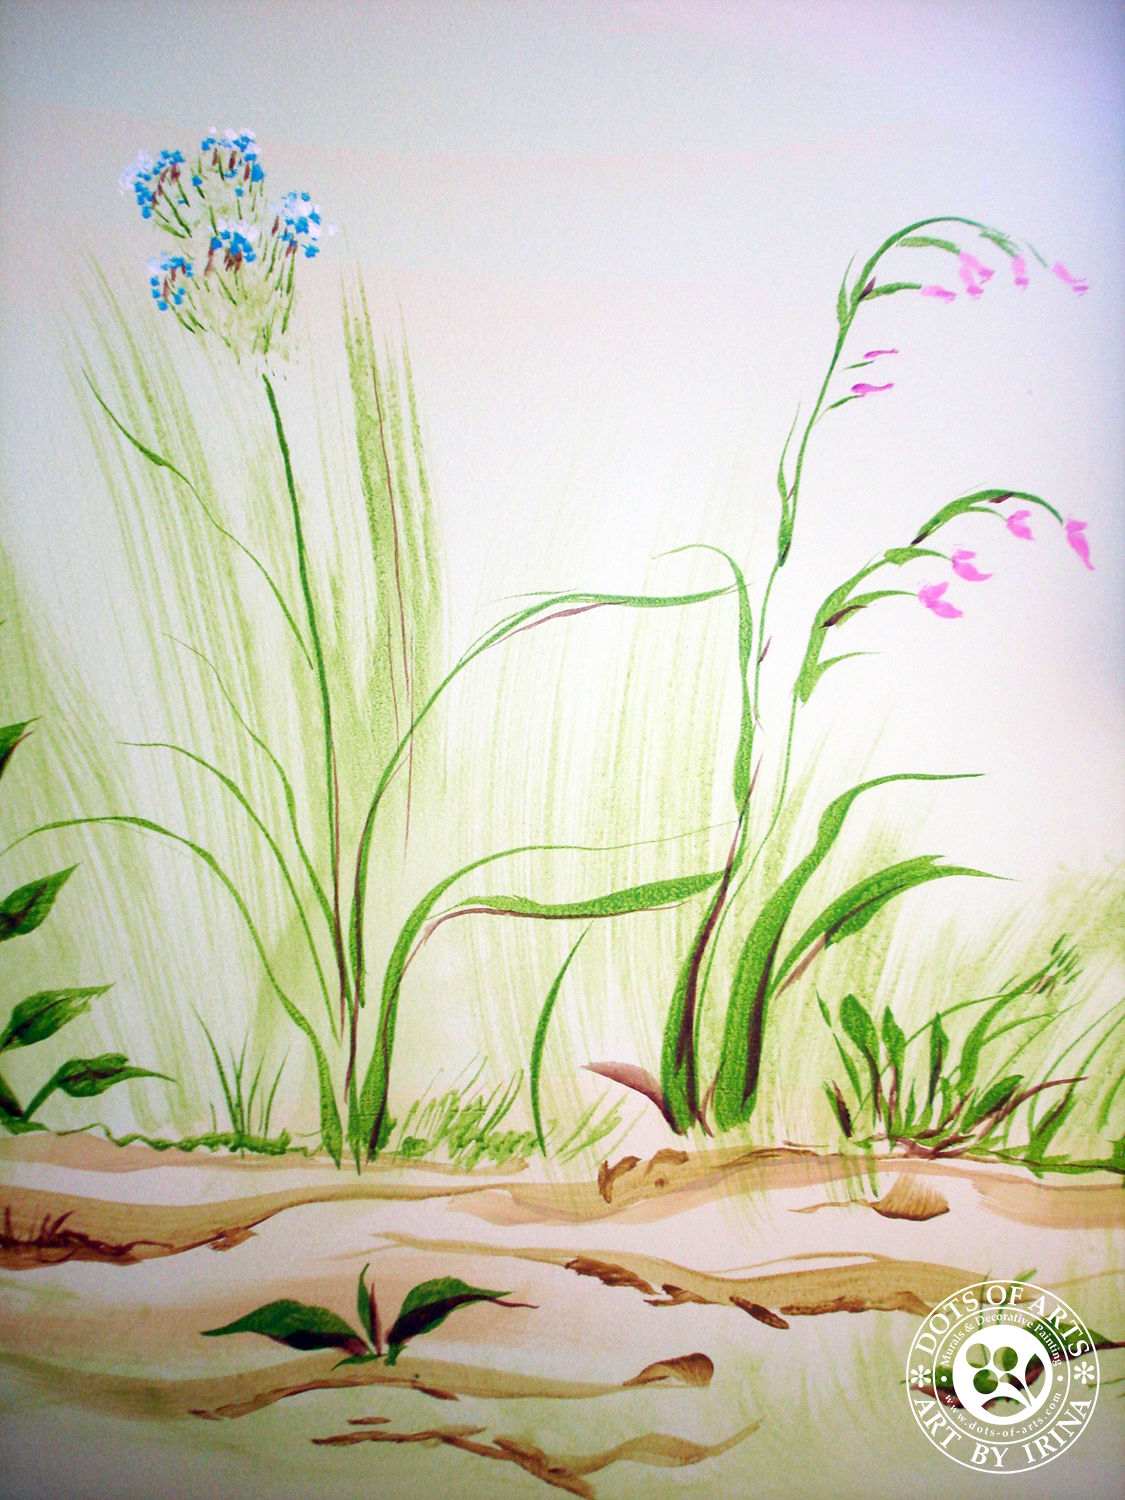 mural-custom-baby-room-farm-theme-clouds-wild-flowers-dots-of-arts-grass.jpg